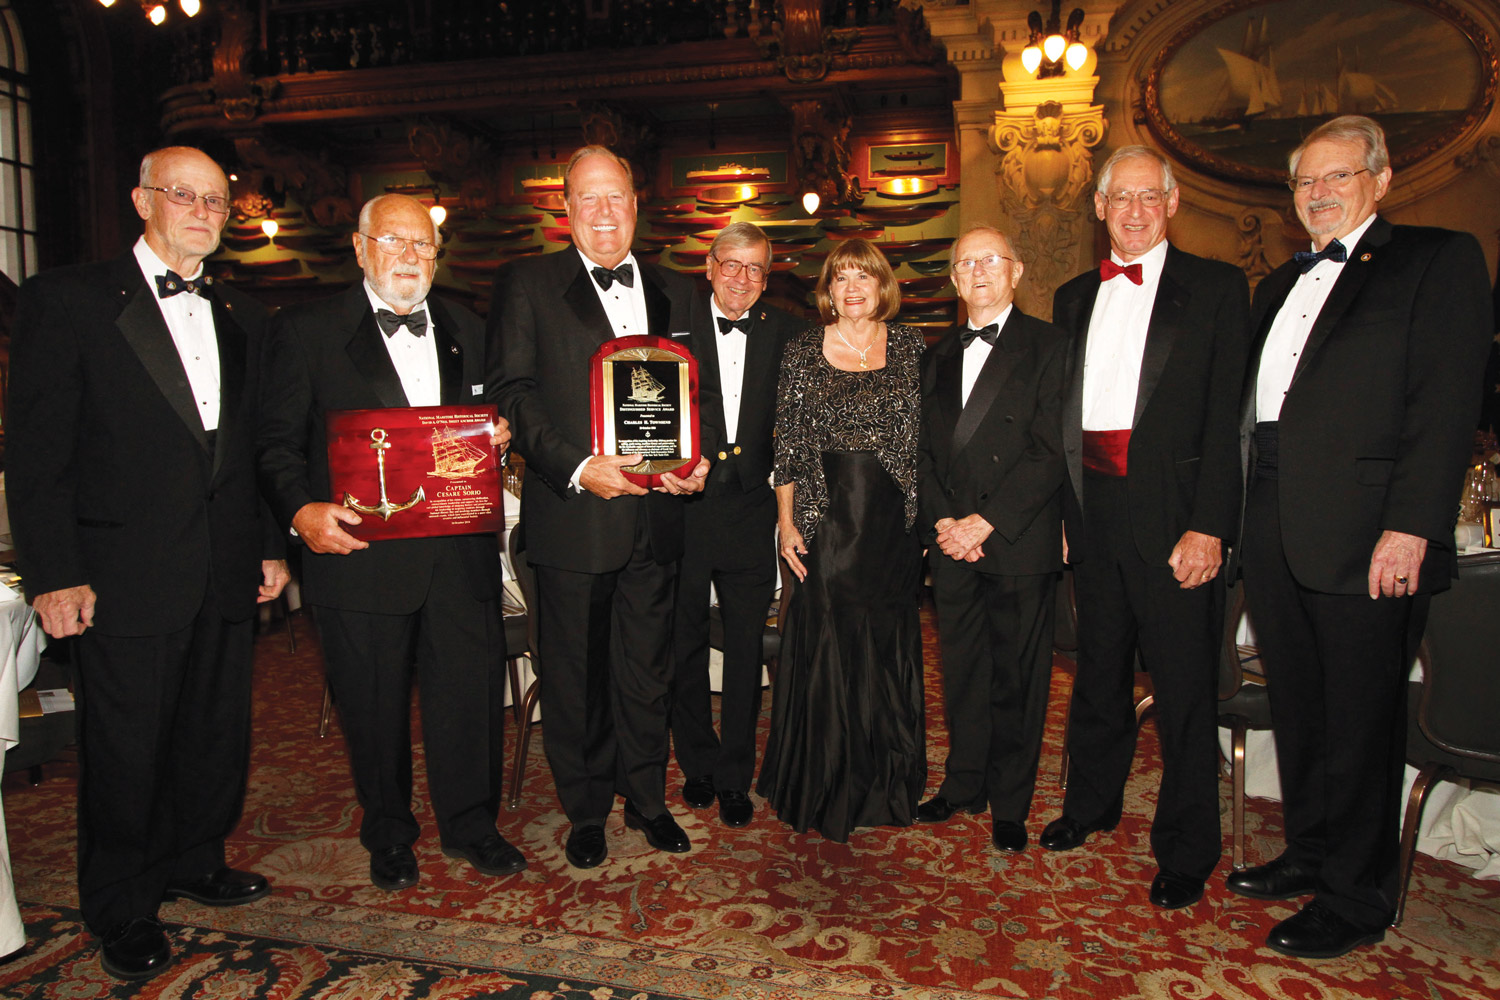 Yacht Club Walter Brown, Cesare Sorio, Charles Townsend, George Carmany, Burchenal Green, John Stobart, Rich Du Moulin, Ronald Oswald AAD 2016